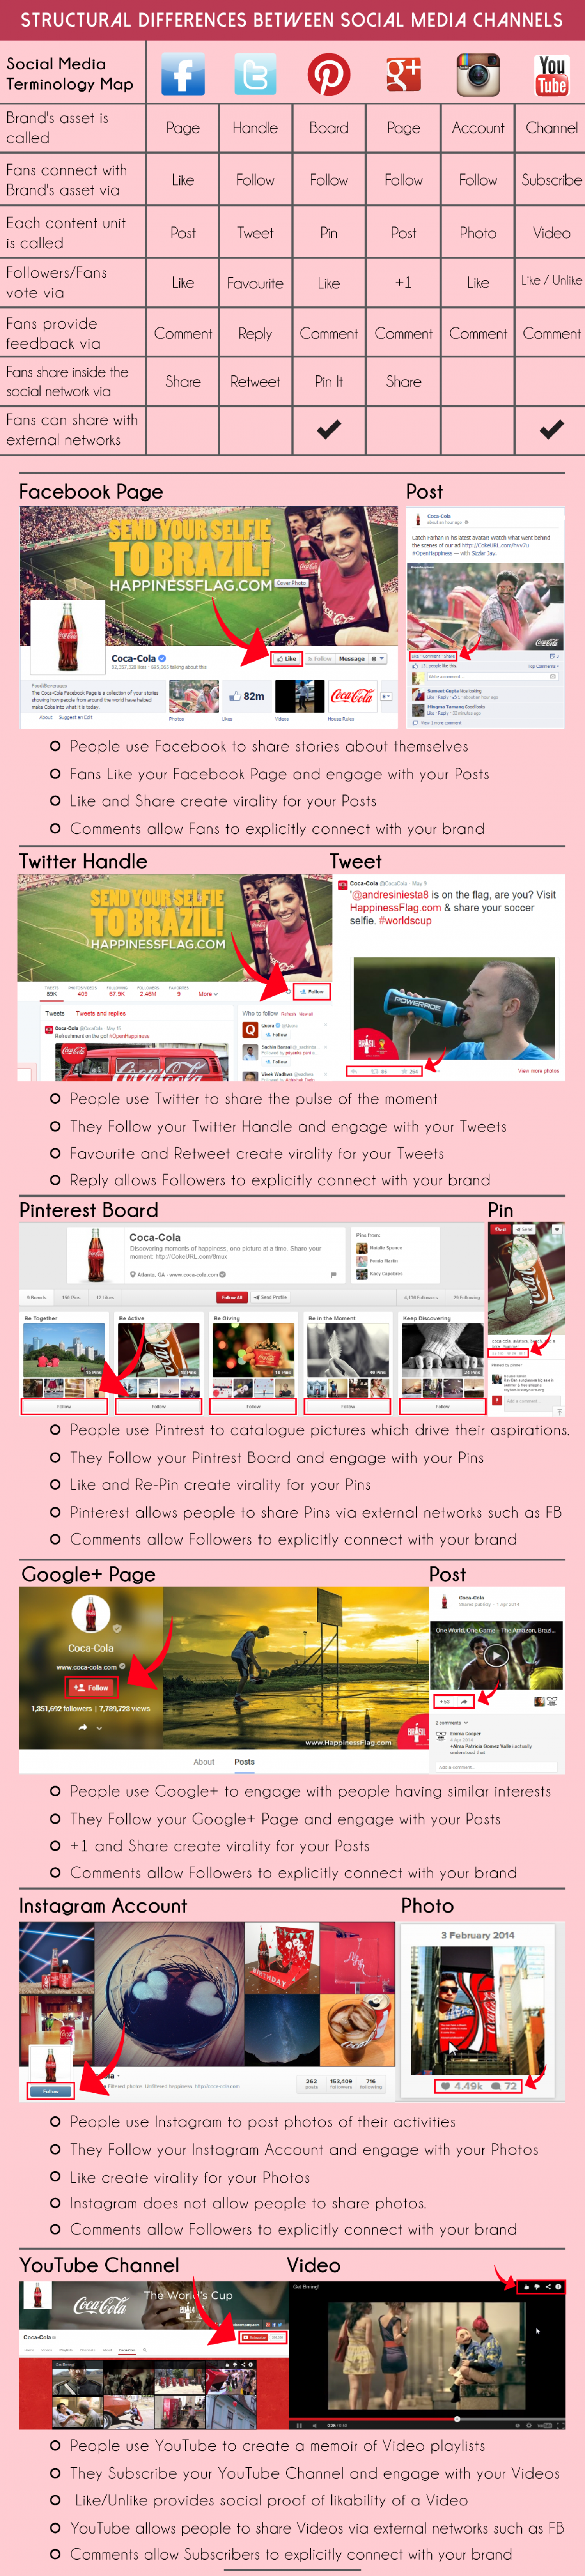 Structured Difference Between Social Media Channels Infographic